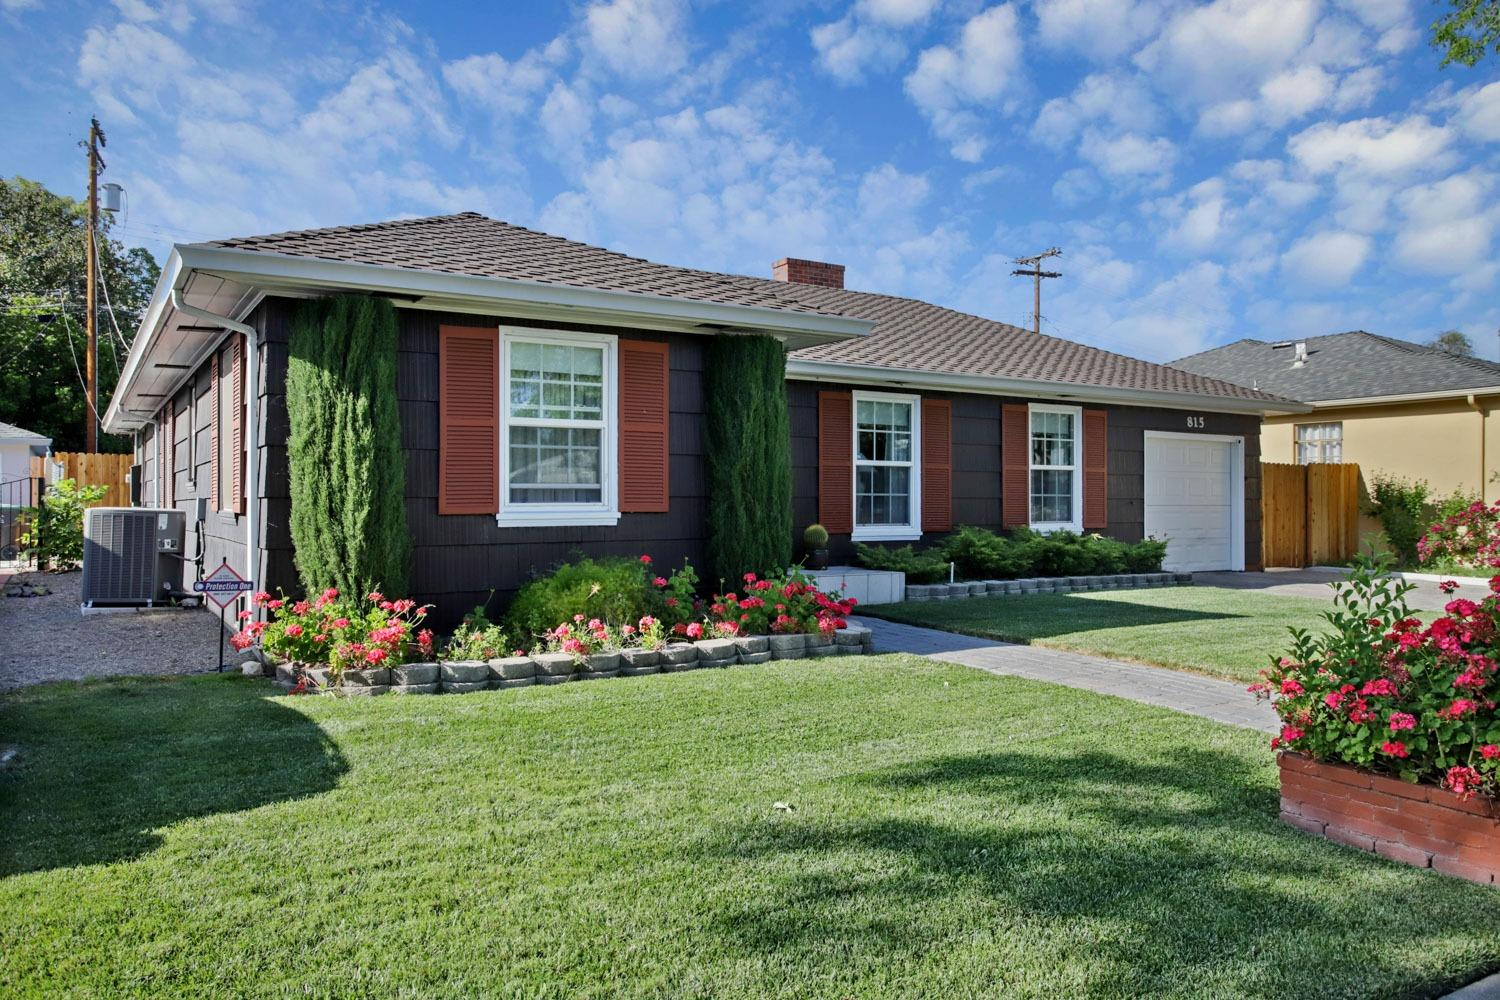 Photo of 815 W Alpine Avenue, Stockton, CA 95204